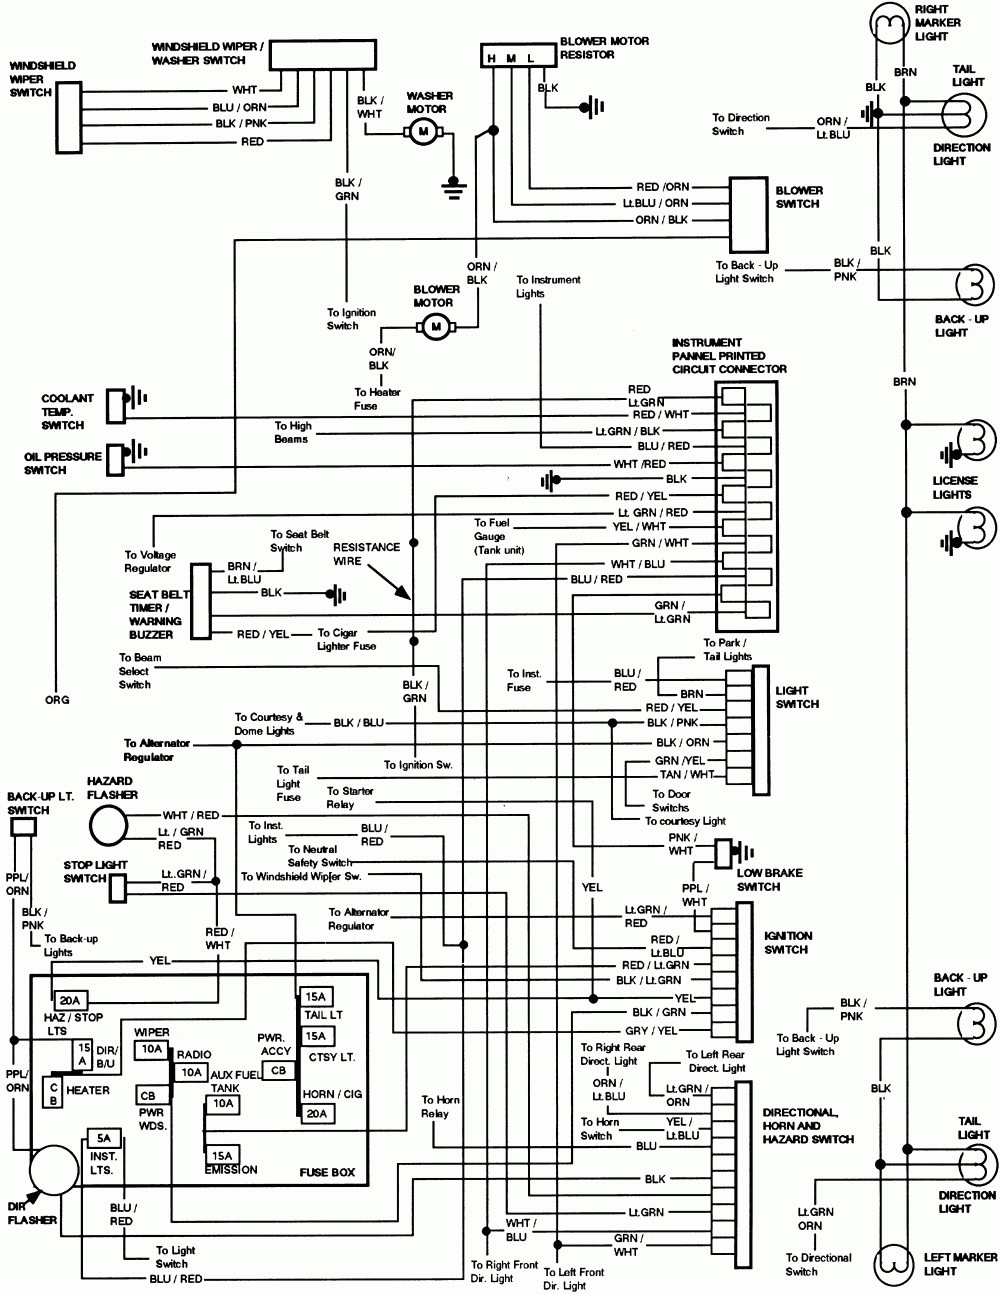 E350 Wiring Diagram Library 1987 Dodge W150 Schematic 1996 F700 Schematics Ram 150 Ford